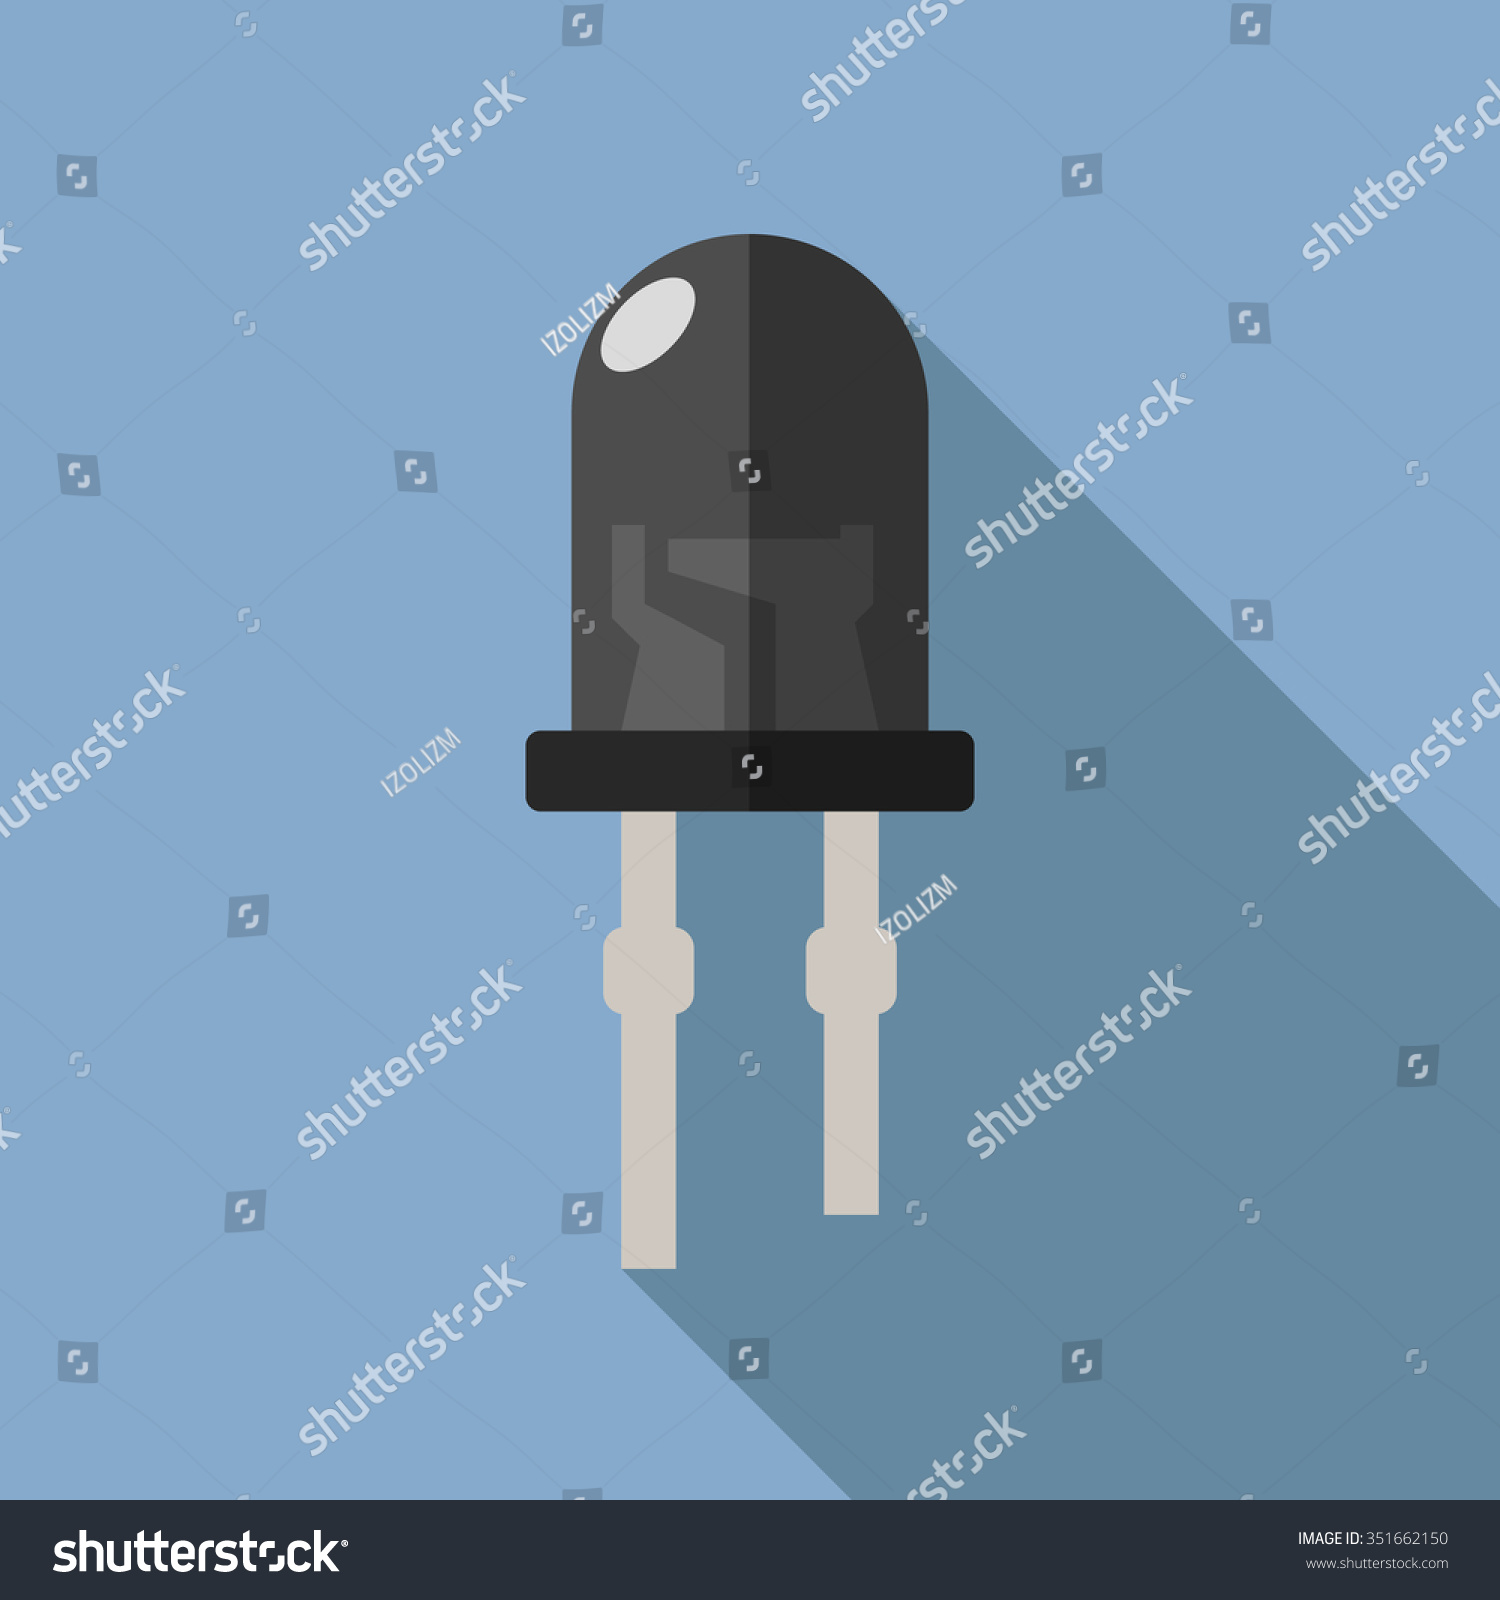 Led Infrared Vector Illustration Lightemitting Diode Stock Ledandlightcircuit Circuit Diagram Of Light Emitting In A Flat Style Design